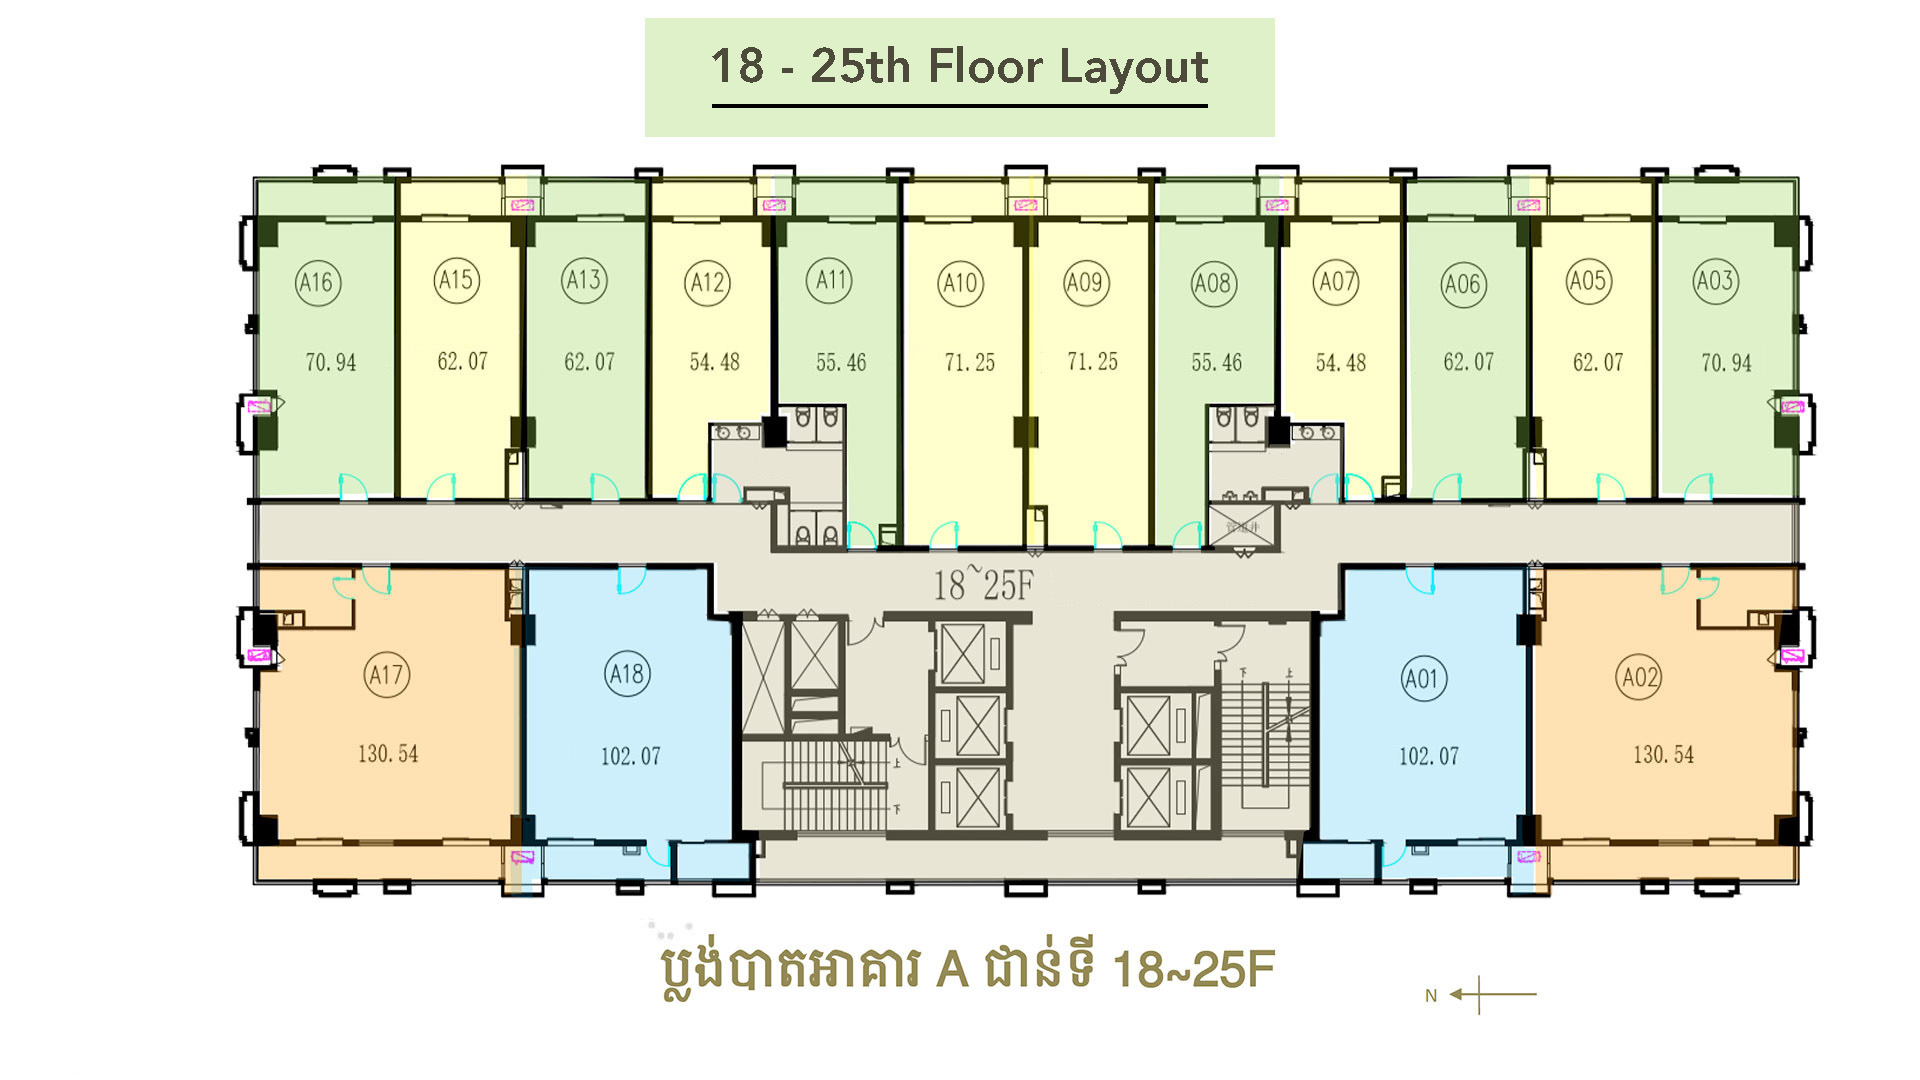 The Parkway - Office Space Floor Layout of 18 - 25th Floor